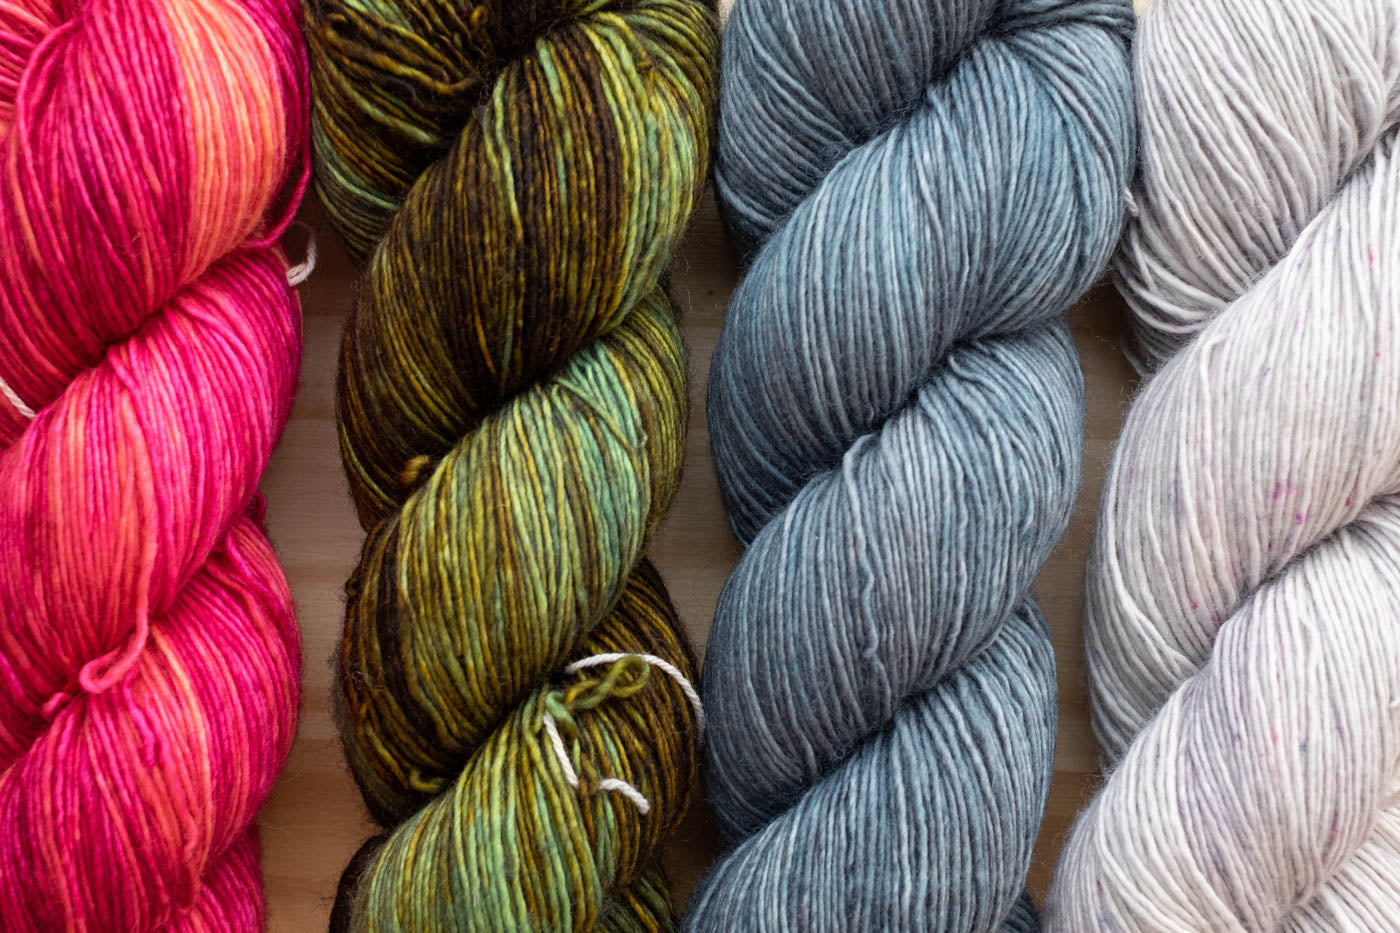 Neighborhood Fiber Co Skeins in lay flat image in red/orange, light green to dark green, light blue and a light silver.